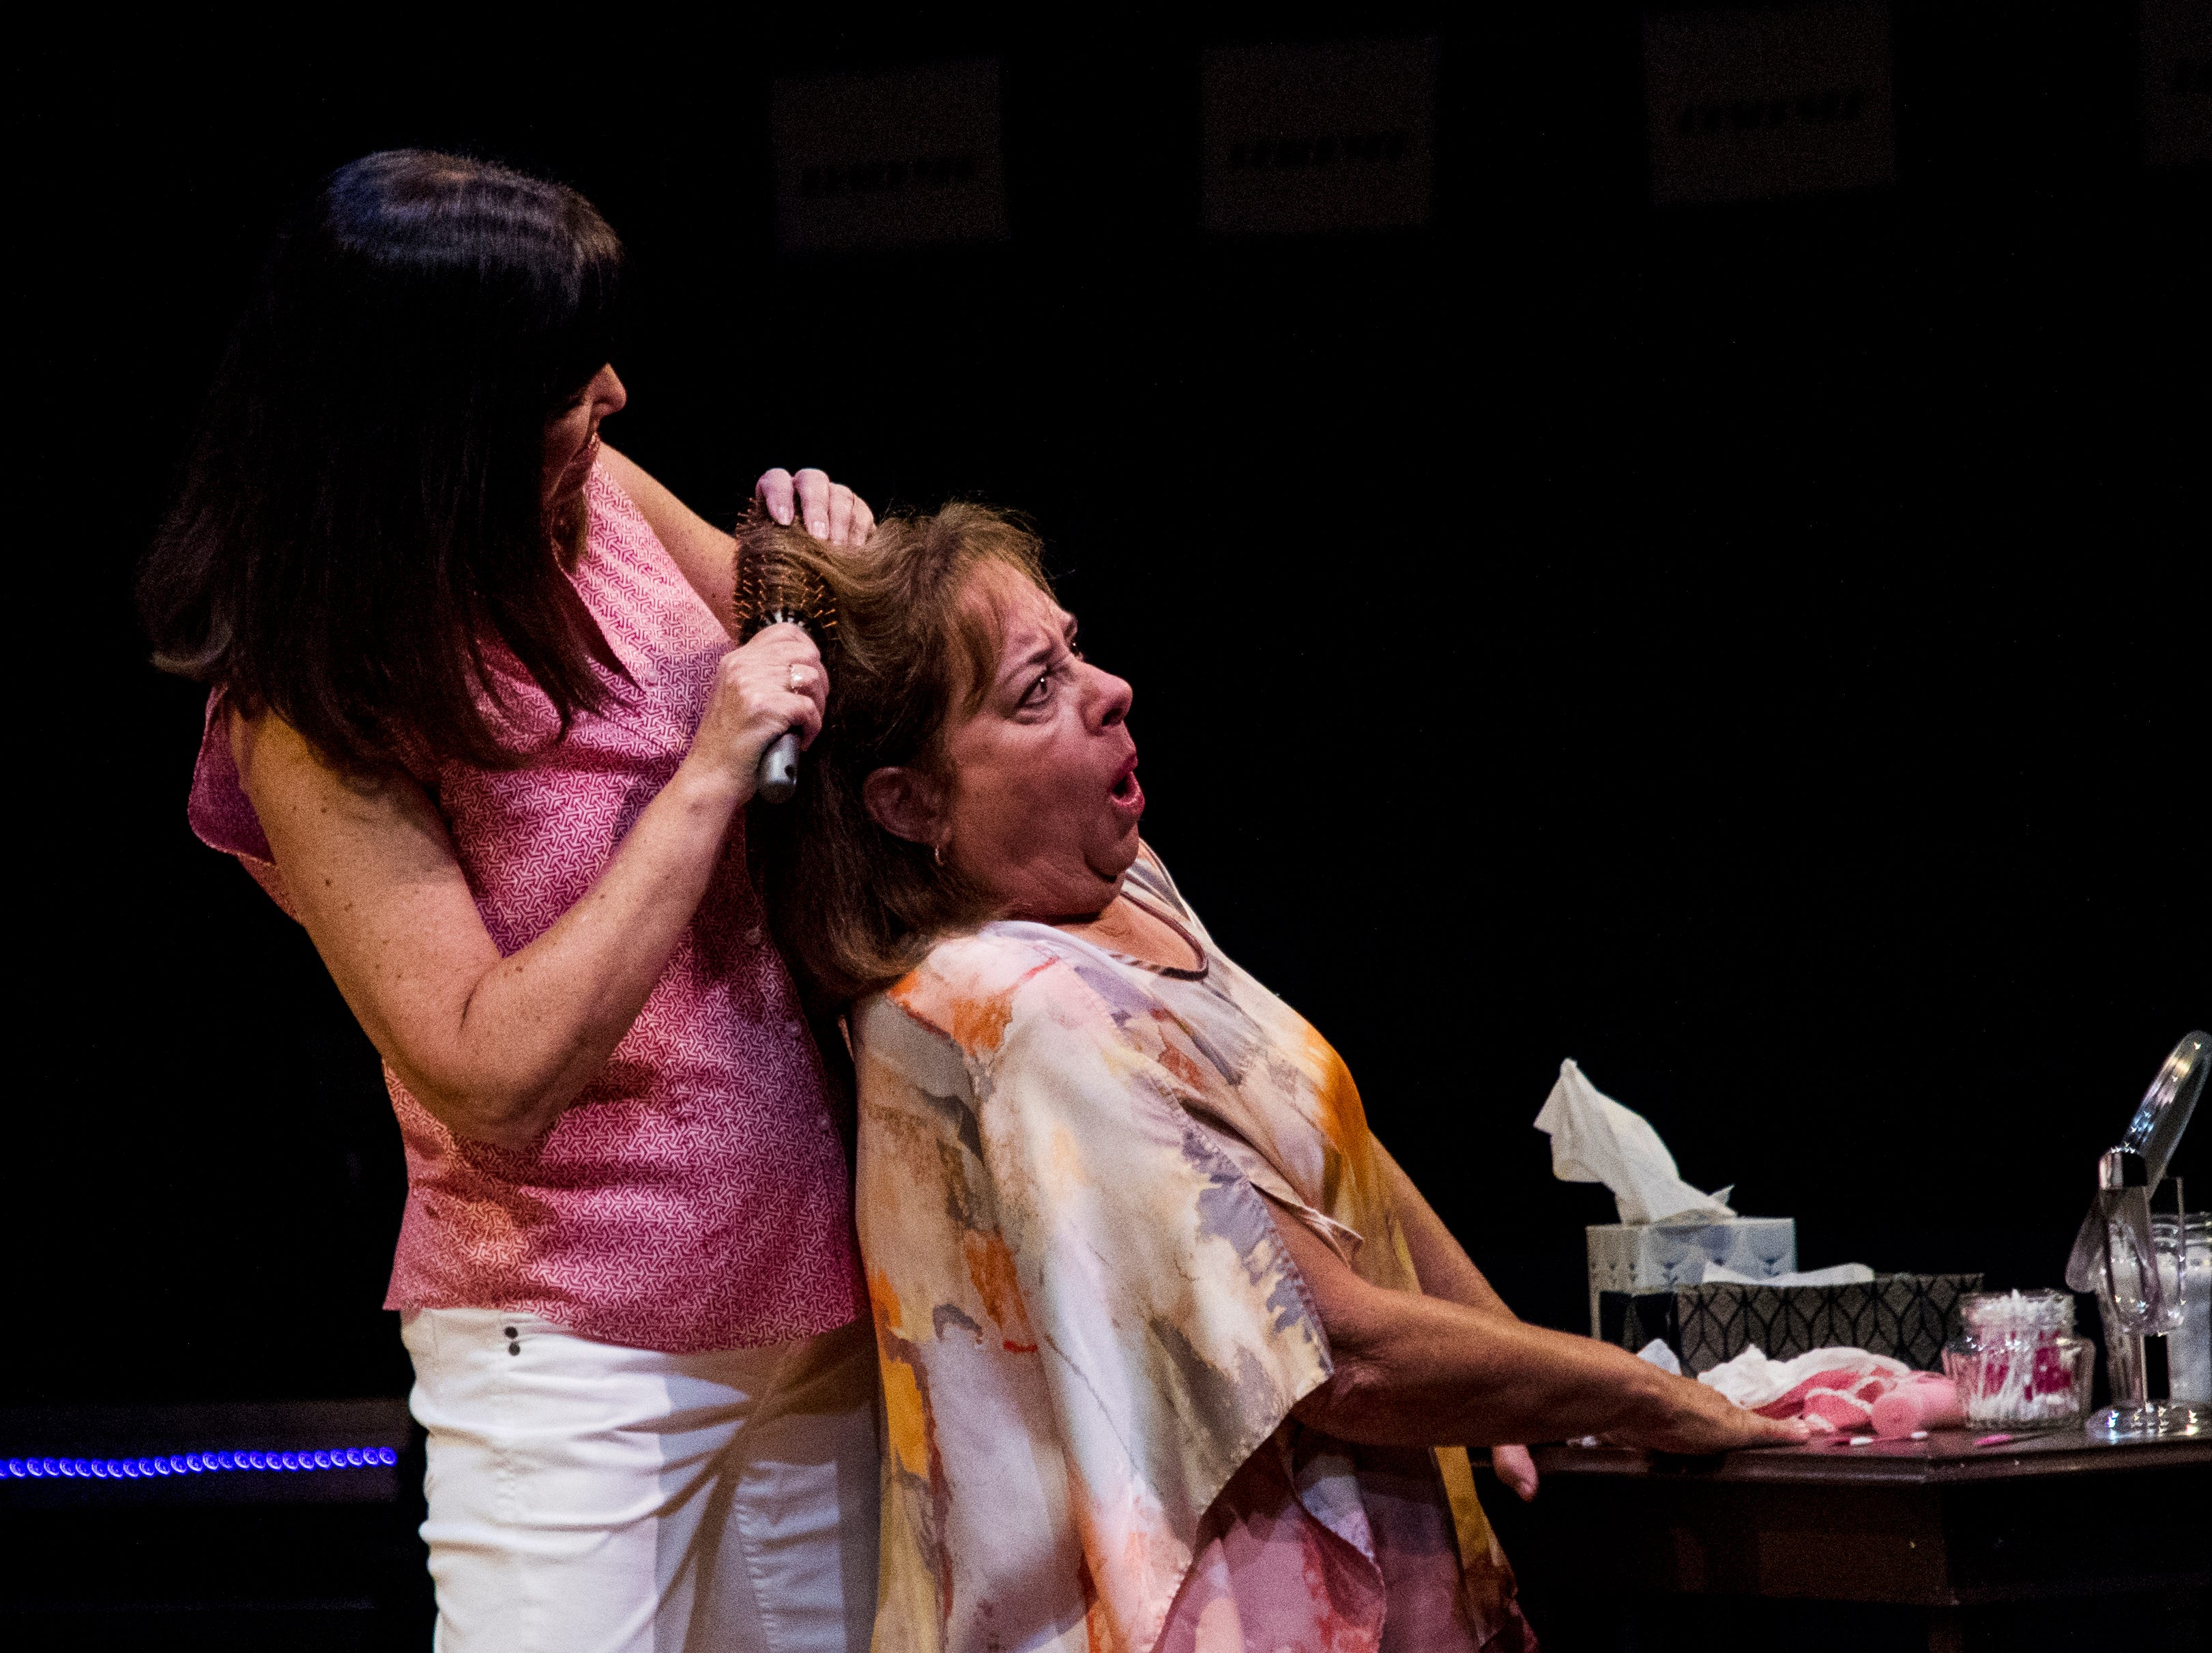 Jo Atkinson playing Deedra and Linda Mizeur playing Charlie act out a scene during a dress rehearsel in Always a Bridesmaid. It is playing at the Tobye Theater at Sugden Community Theater on 5th Ave. in Naples from March 27-April 20.